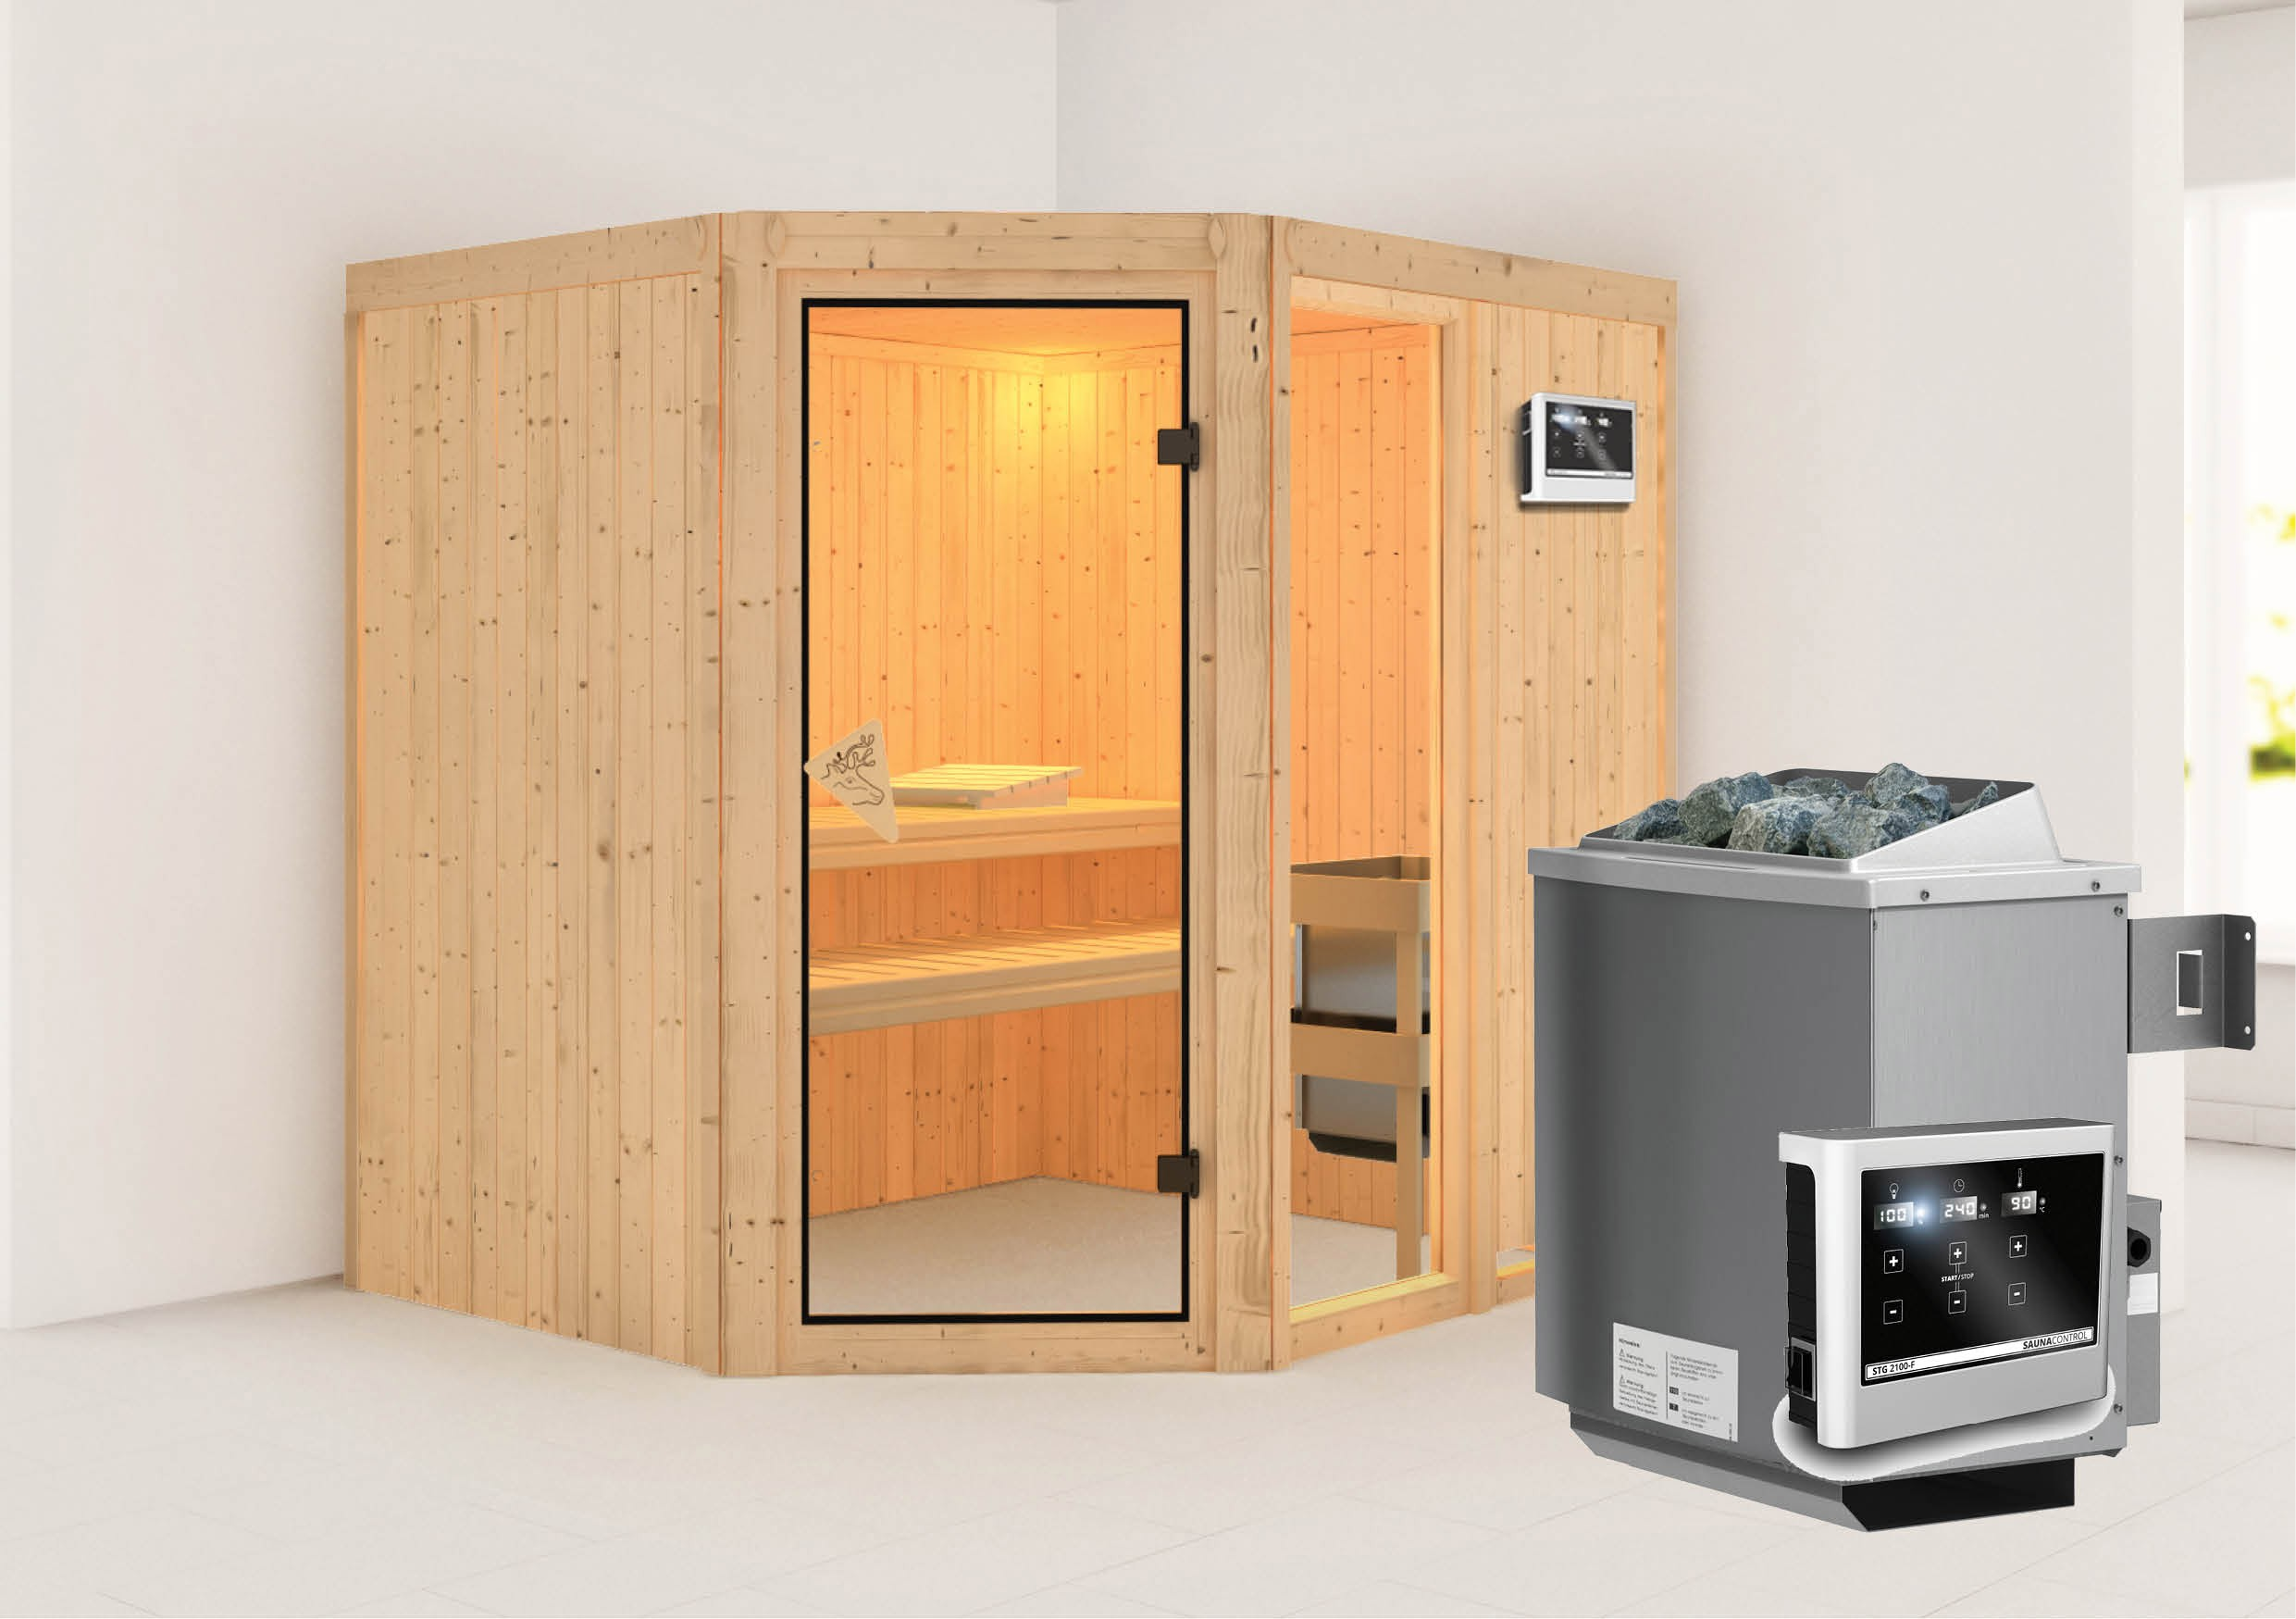 karibu sauna fiona2 68mm mit ofen 9kw extern classic t r bei. Black Bedroom Furniture Sets. Home Design Ideas